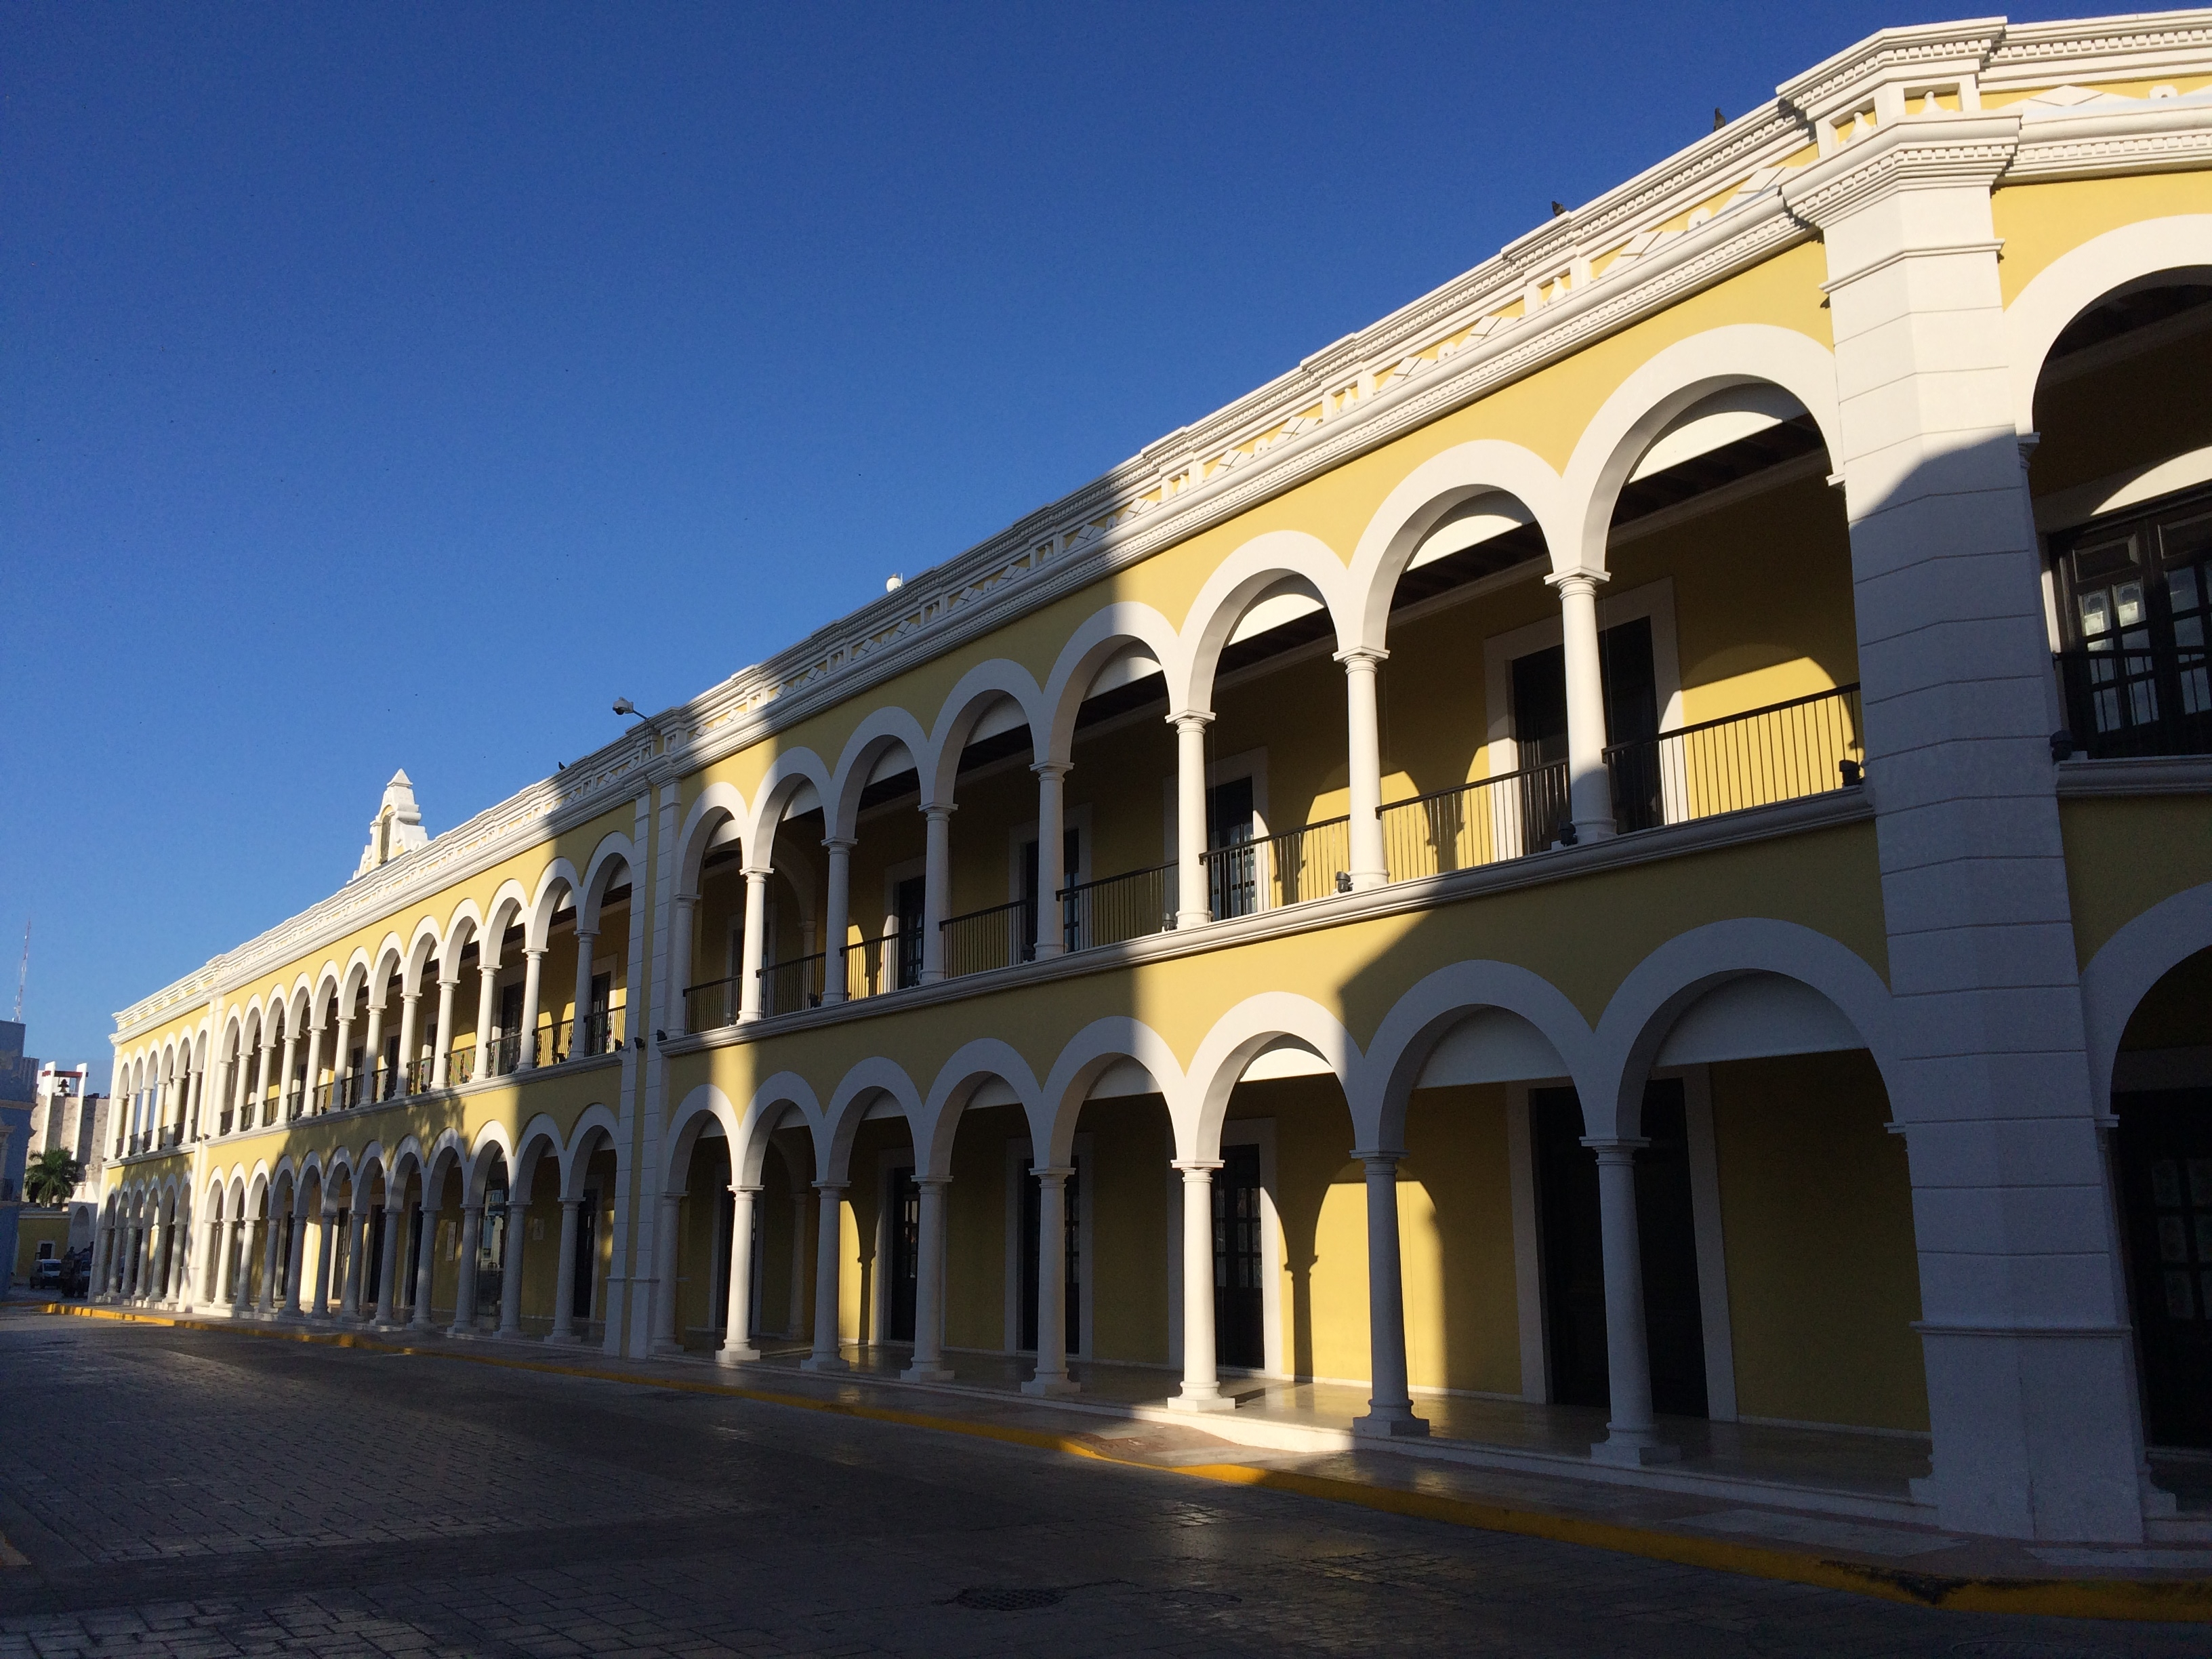 The nearby reconstructed Campeche Library and Cultural Center